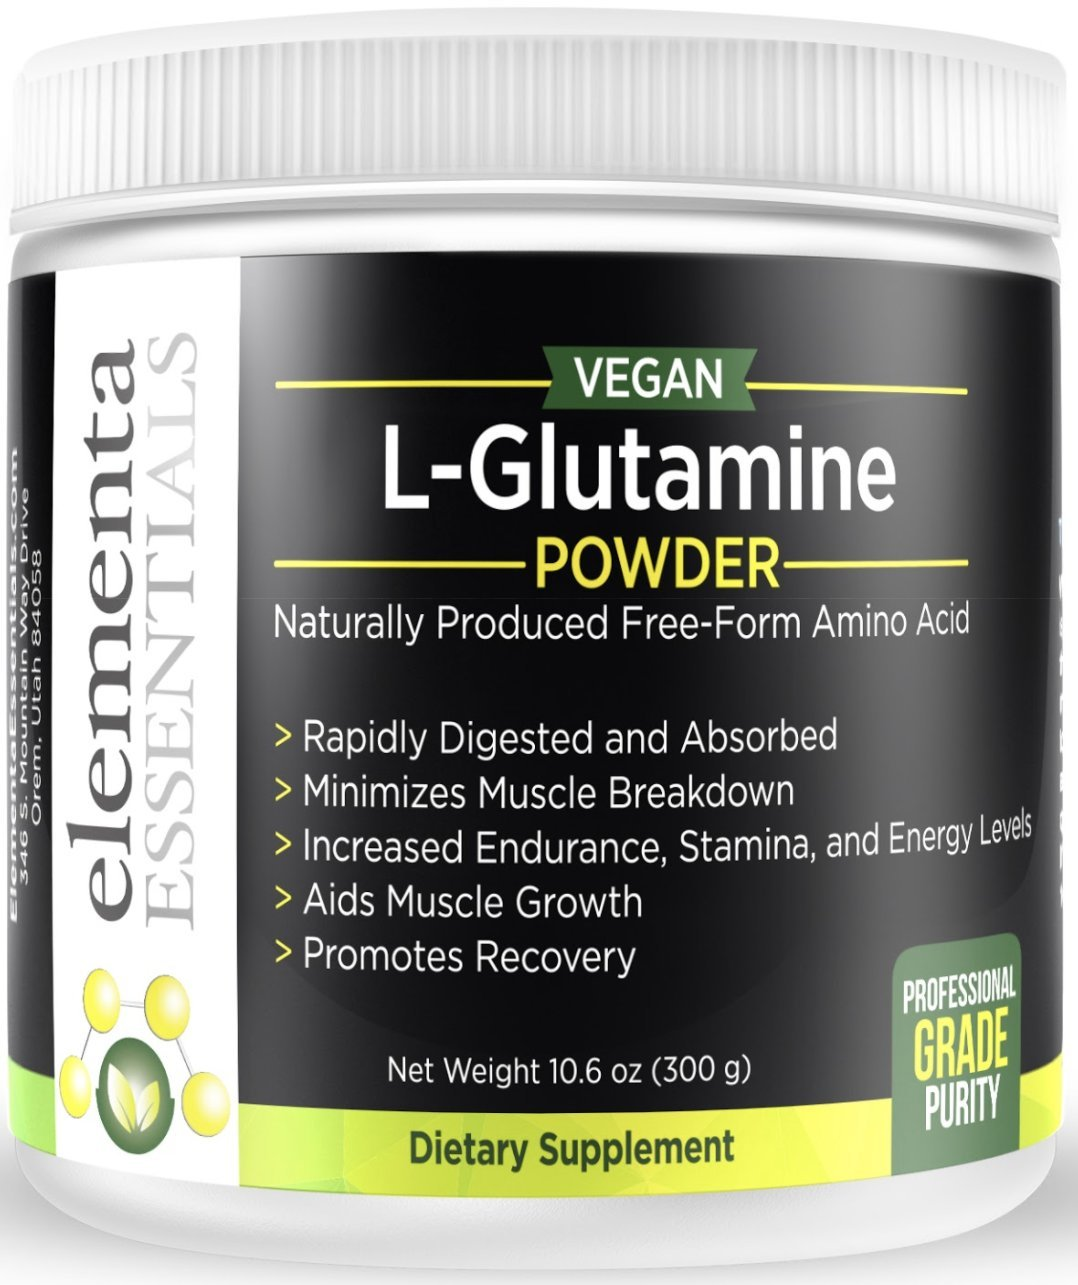 Pure Micronized L Glutamine Powder 5000mg Serving Highly Concentrated 300 Grams Recover from Workouts Retain Muscle Mass Support Gut Health 100 unflavored Freeform L-Glutamine no additives